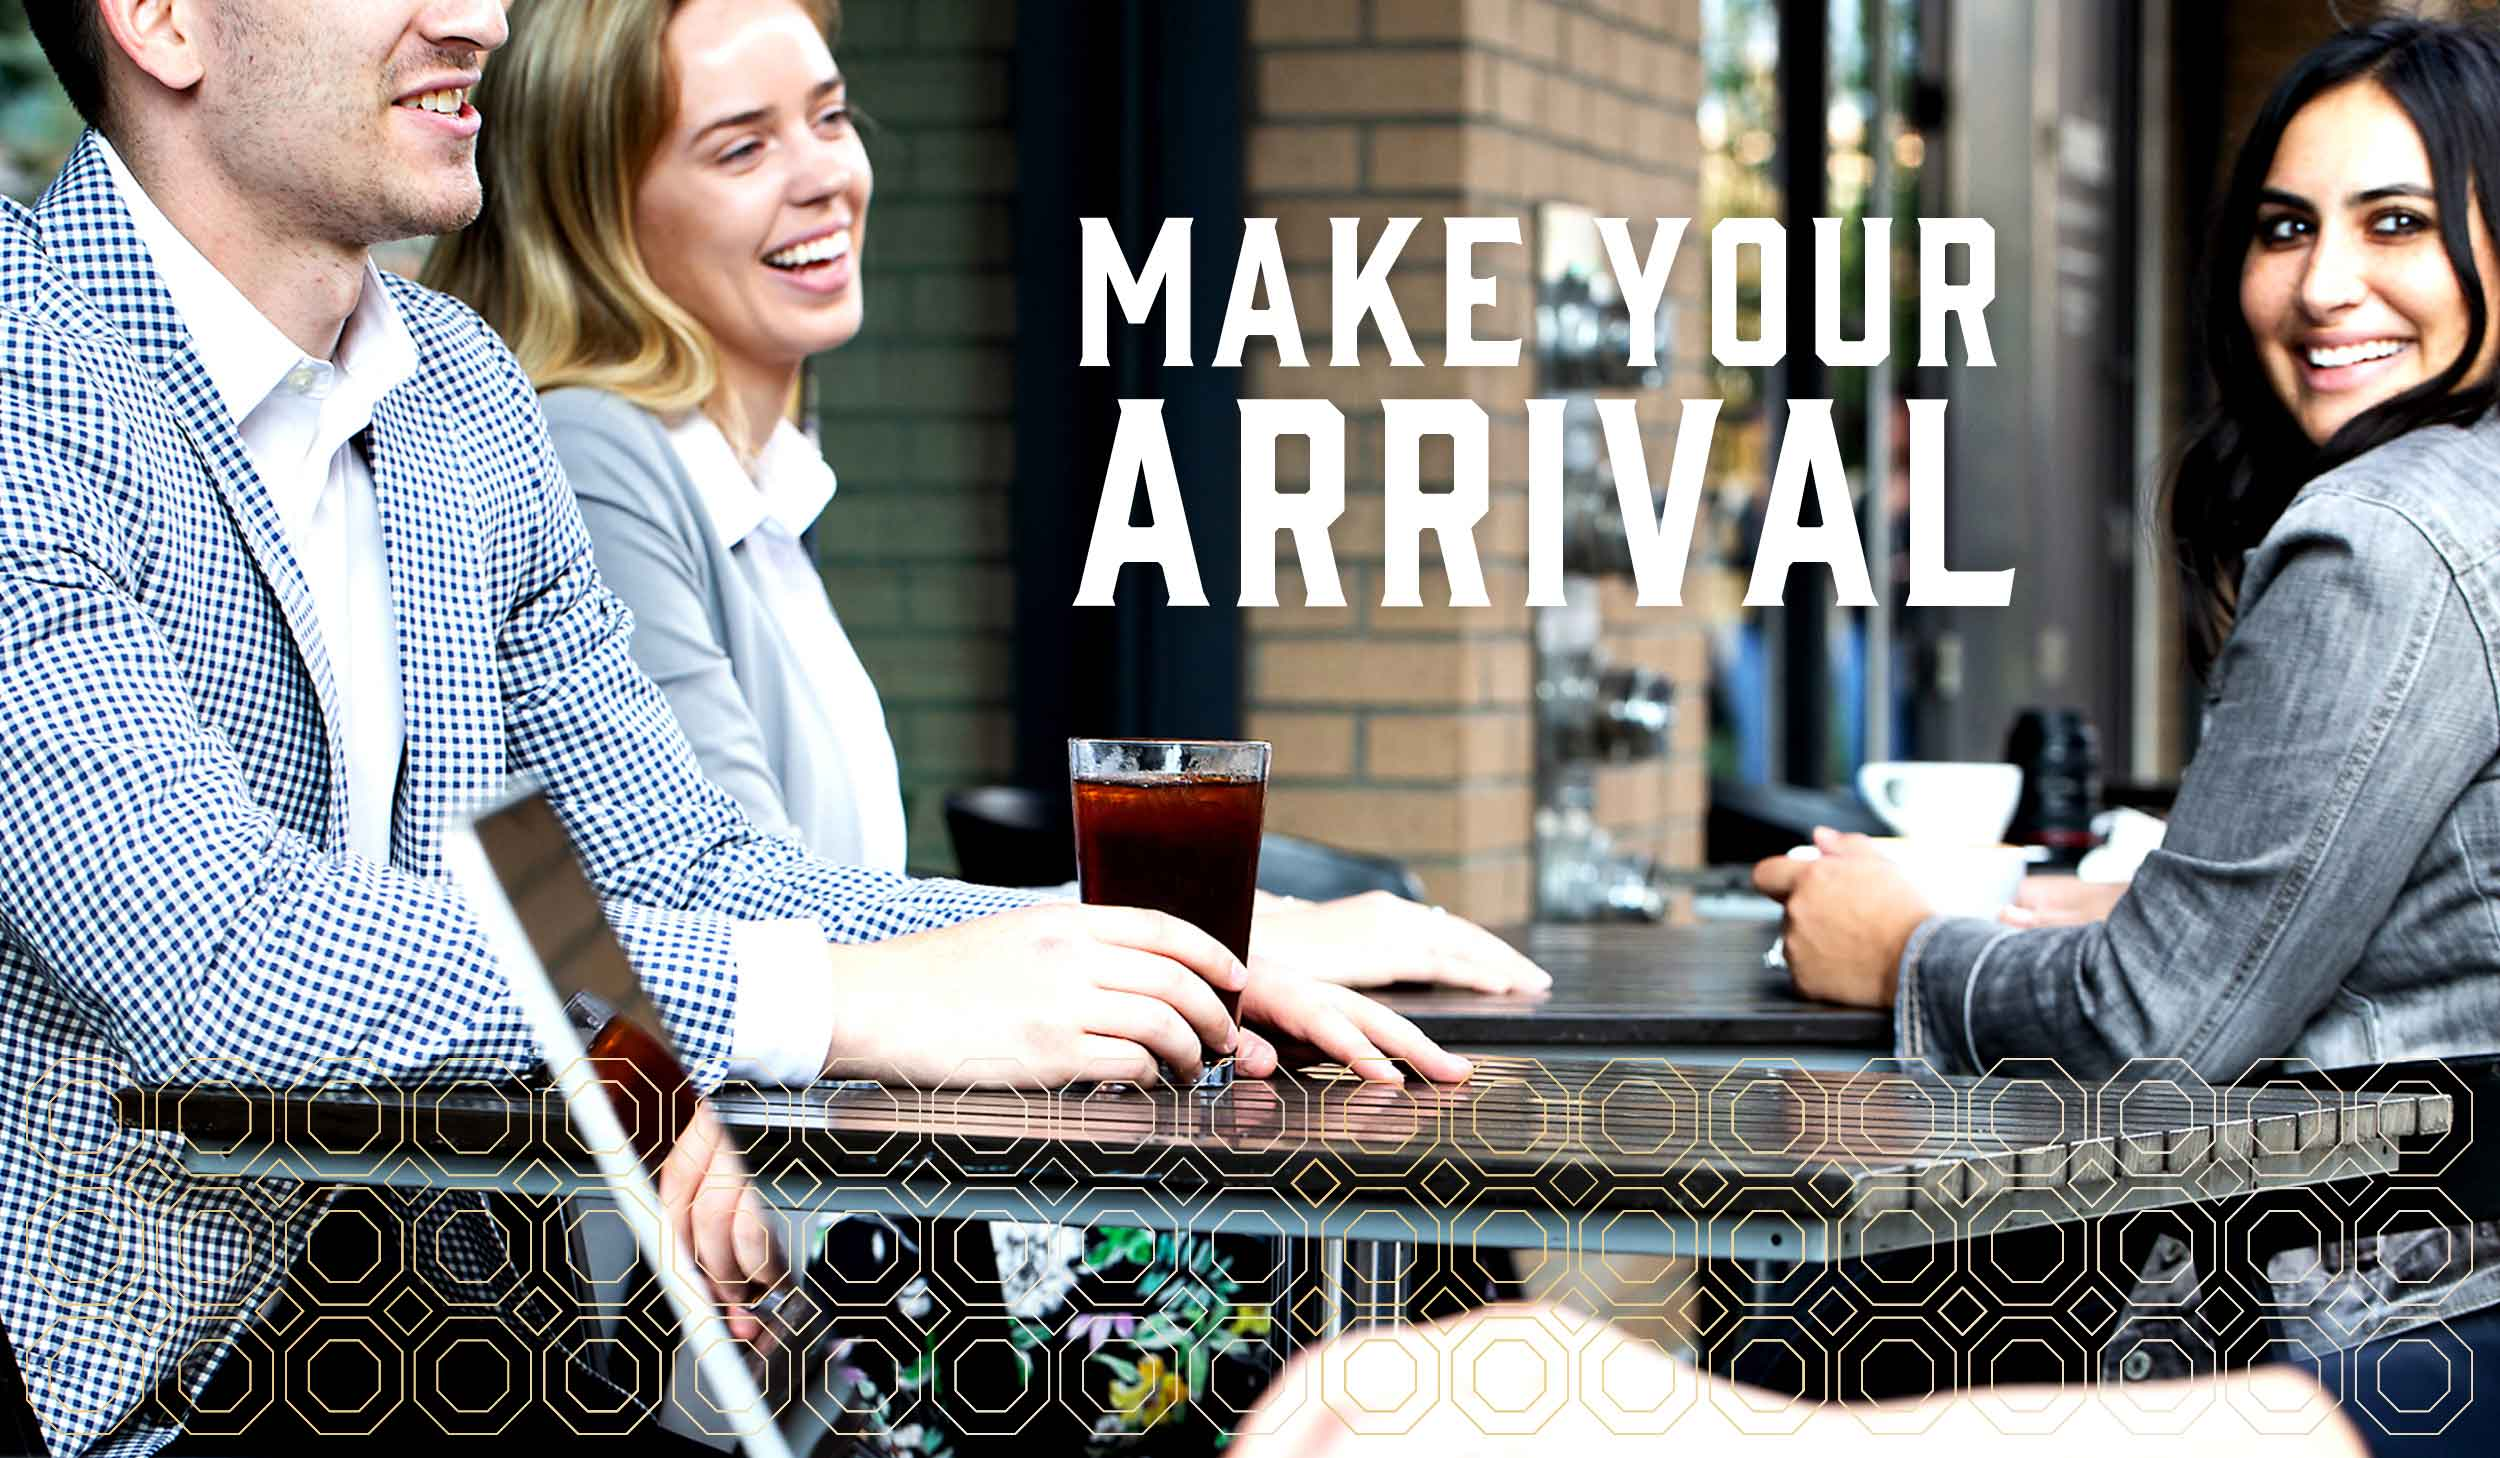 photo of two women and one man smiling at a street side cafe with Make Your Arrival text overlay